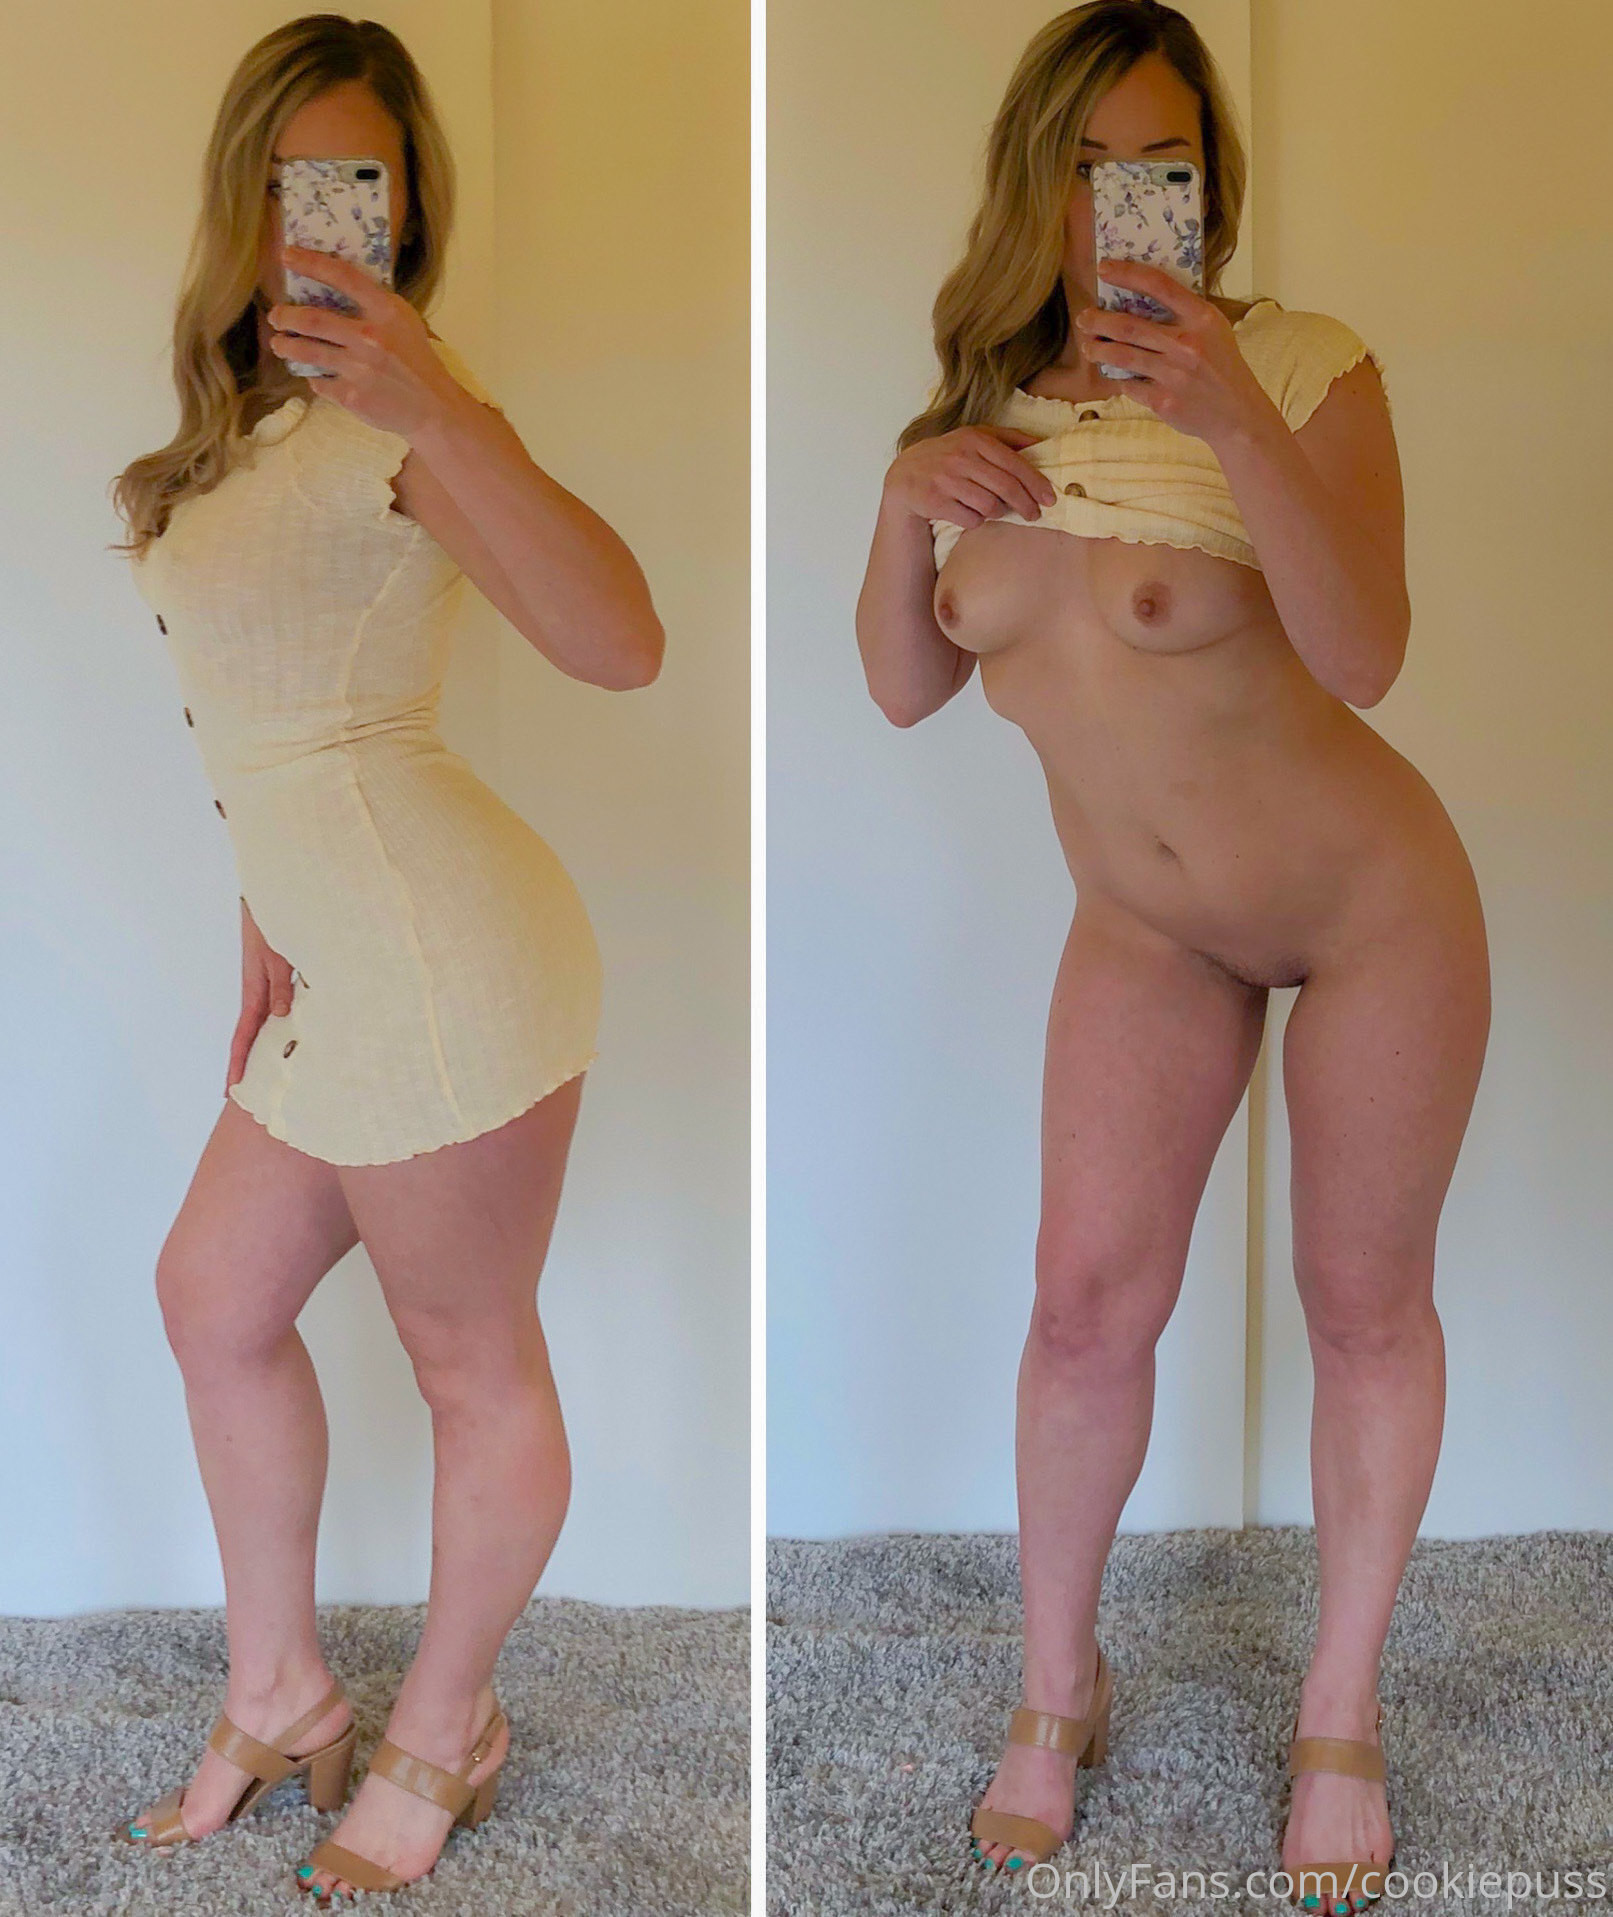 cookiepuss Onlyfans Leaked Nudes fappenings.com 31